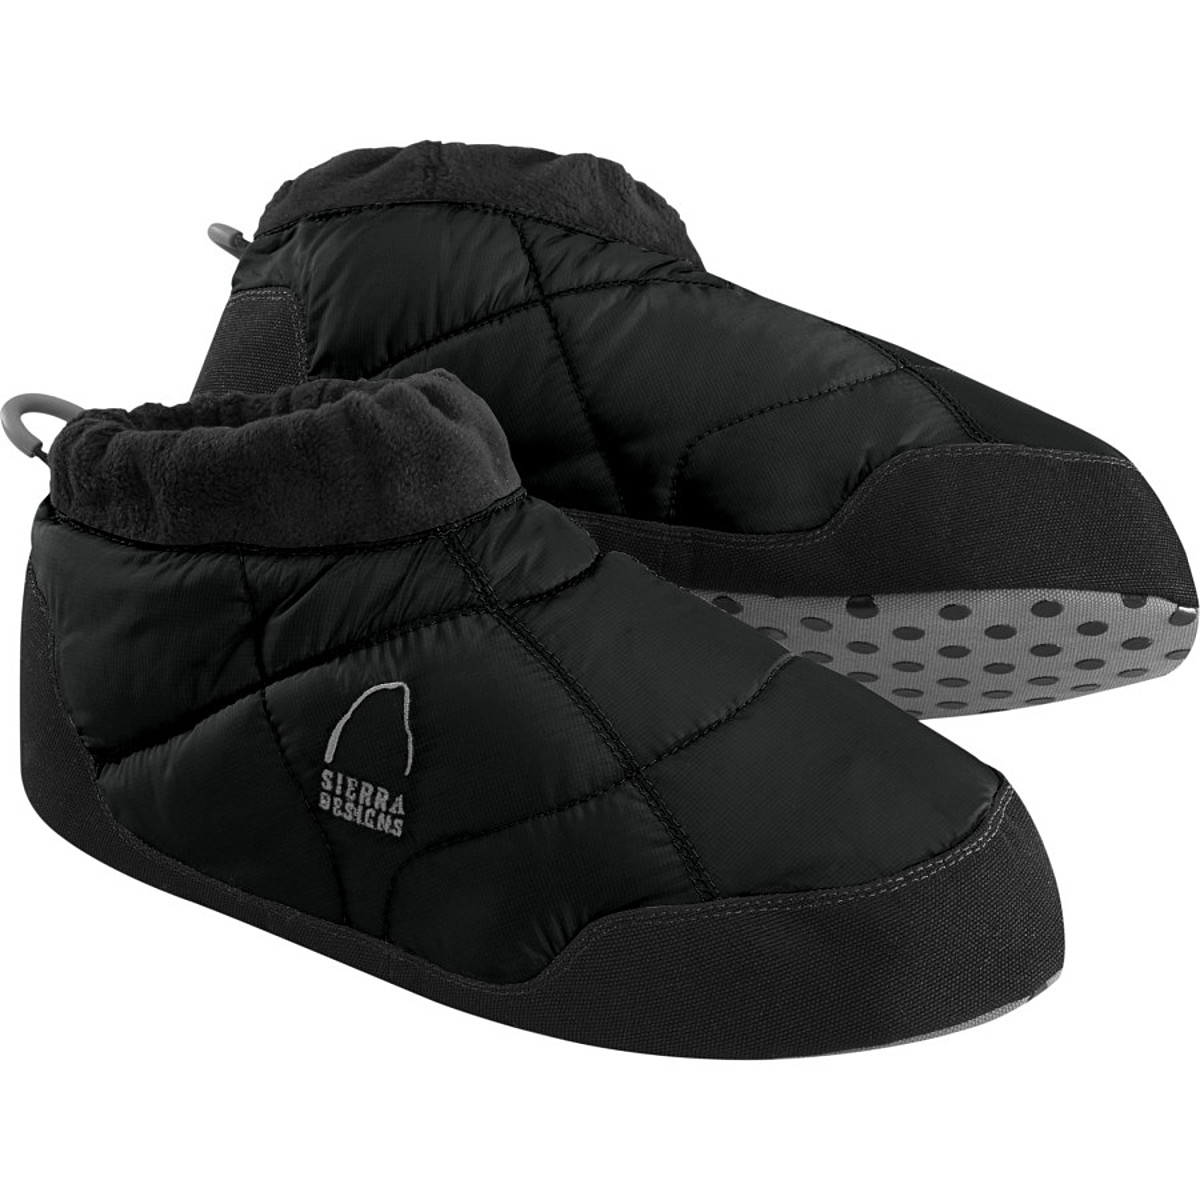 Sierra Designs Down Moccasin